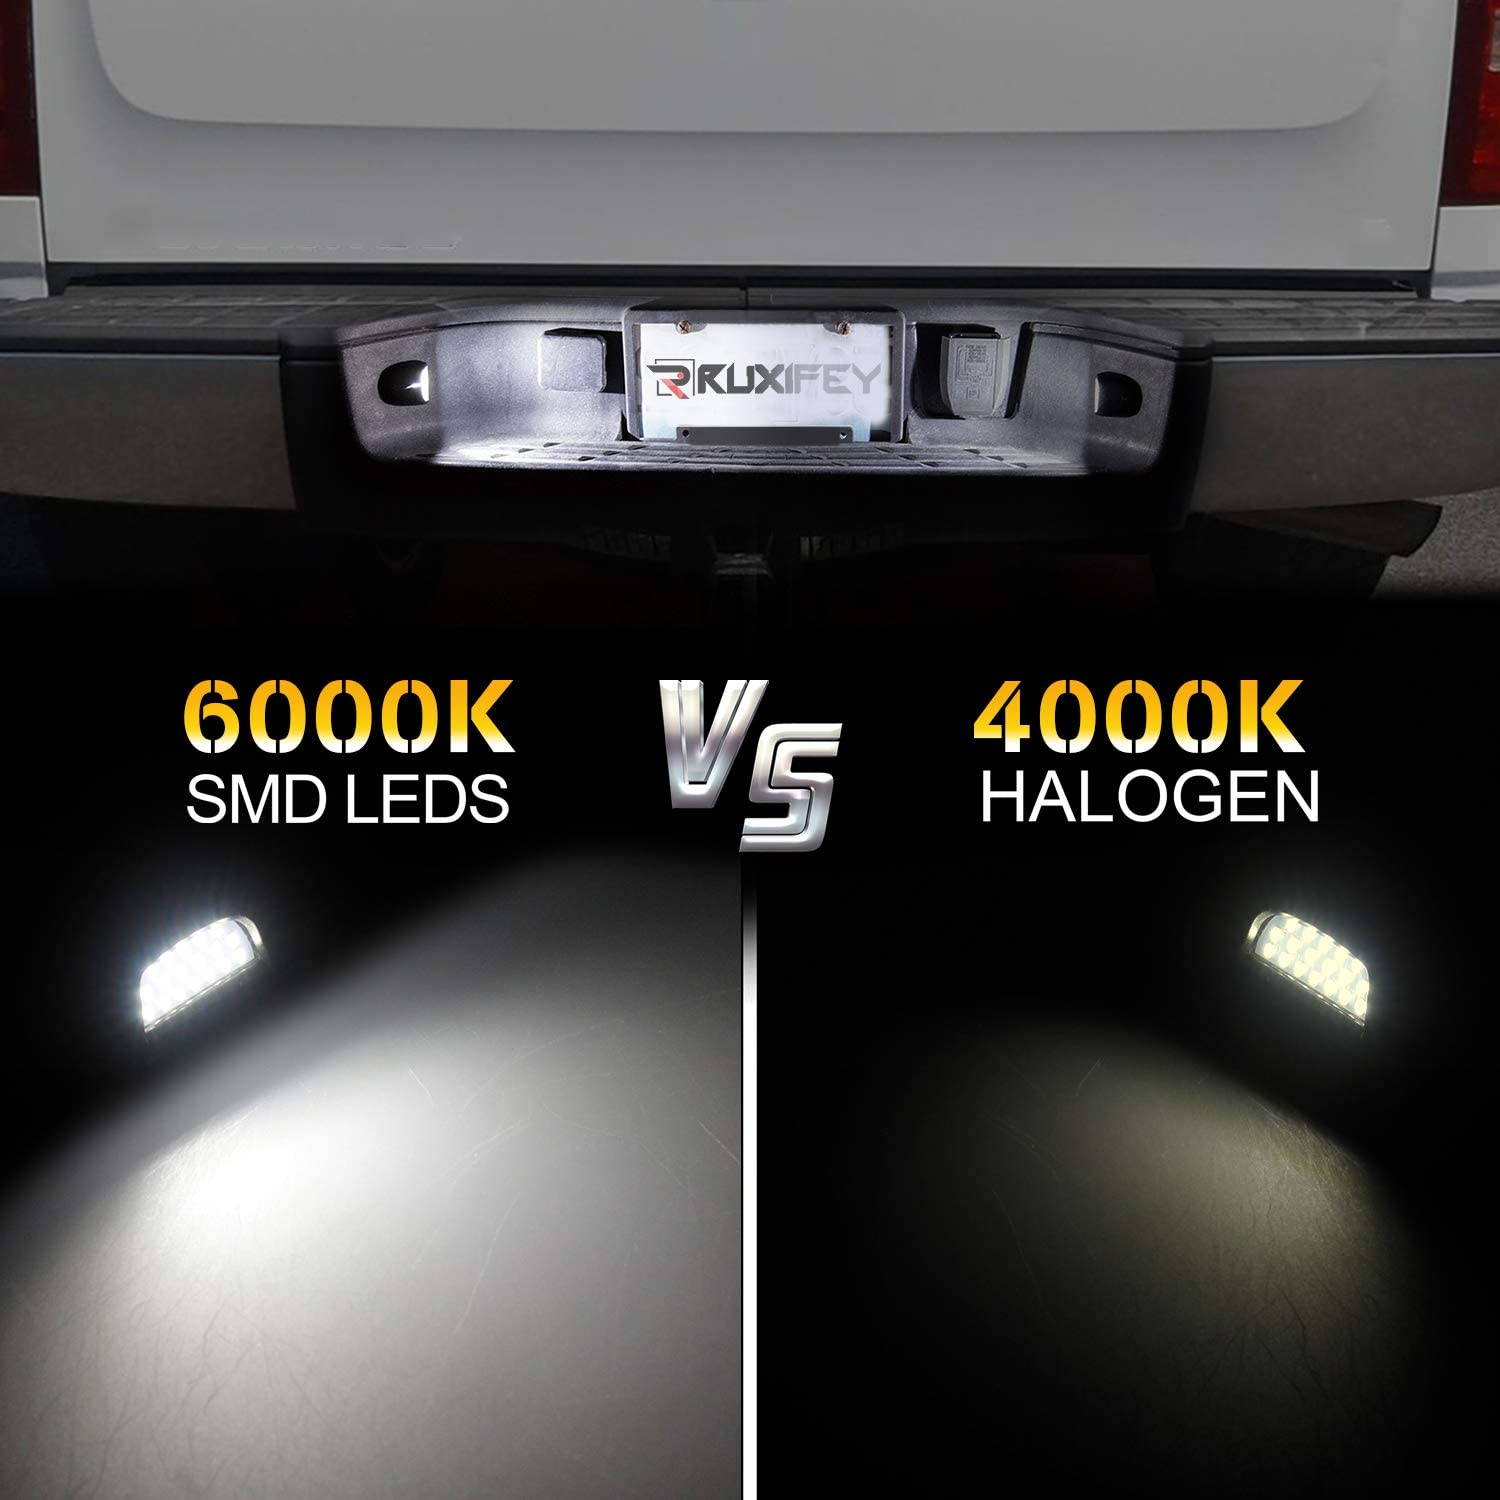 6000K White RUXIFEY LED License Plate Light with Socket Wiring Harness Plugs Compatible with Chevy Silverado Tahoe Suburban GMC Sierra 1500 2500 3500 HD Escalade EXT